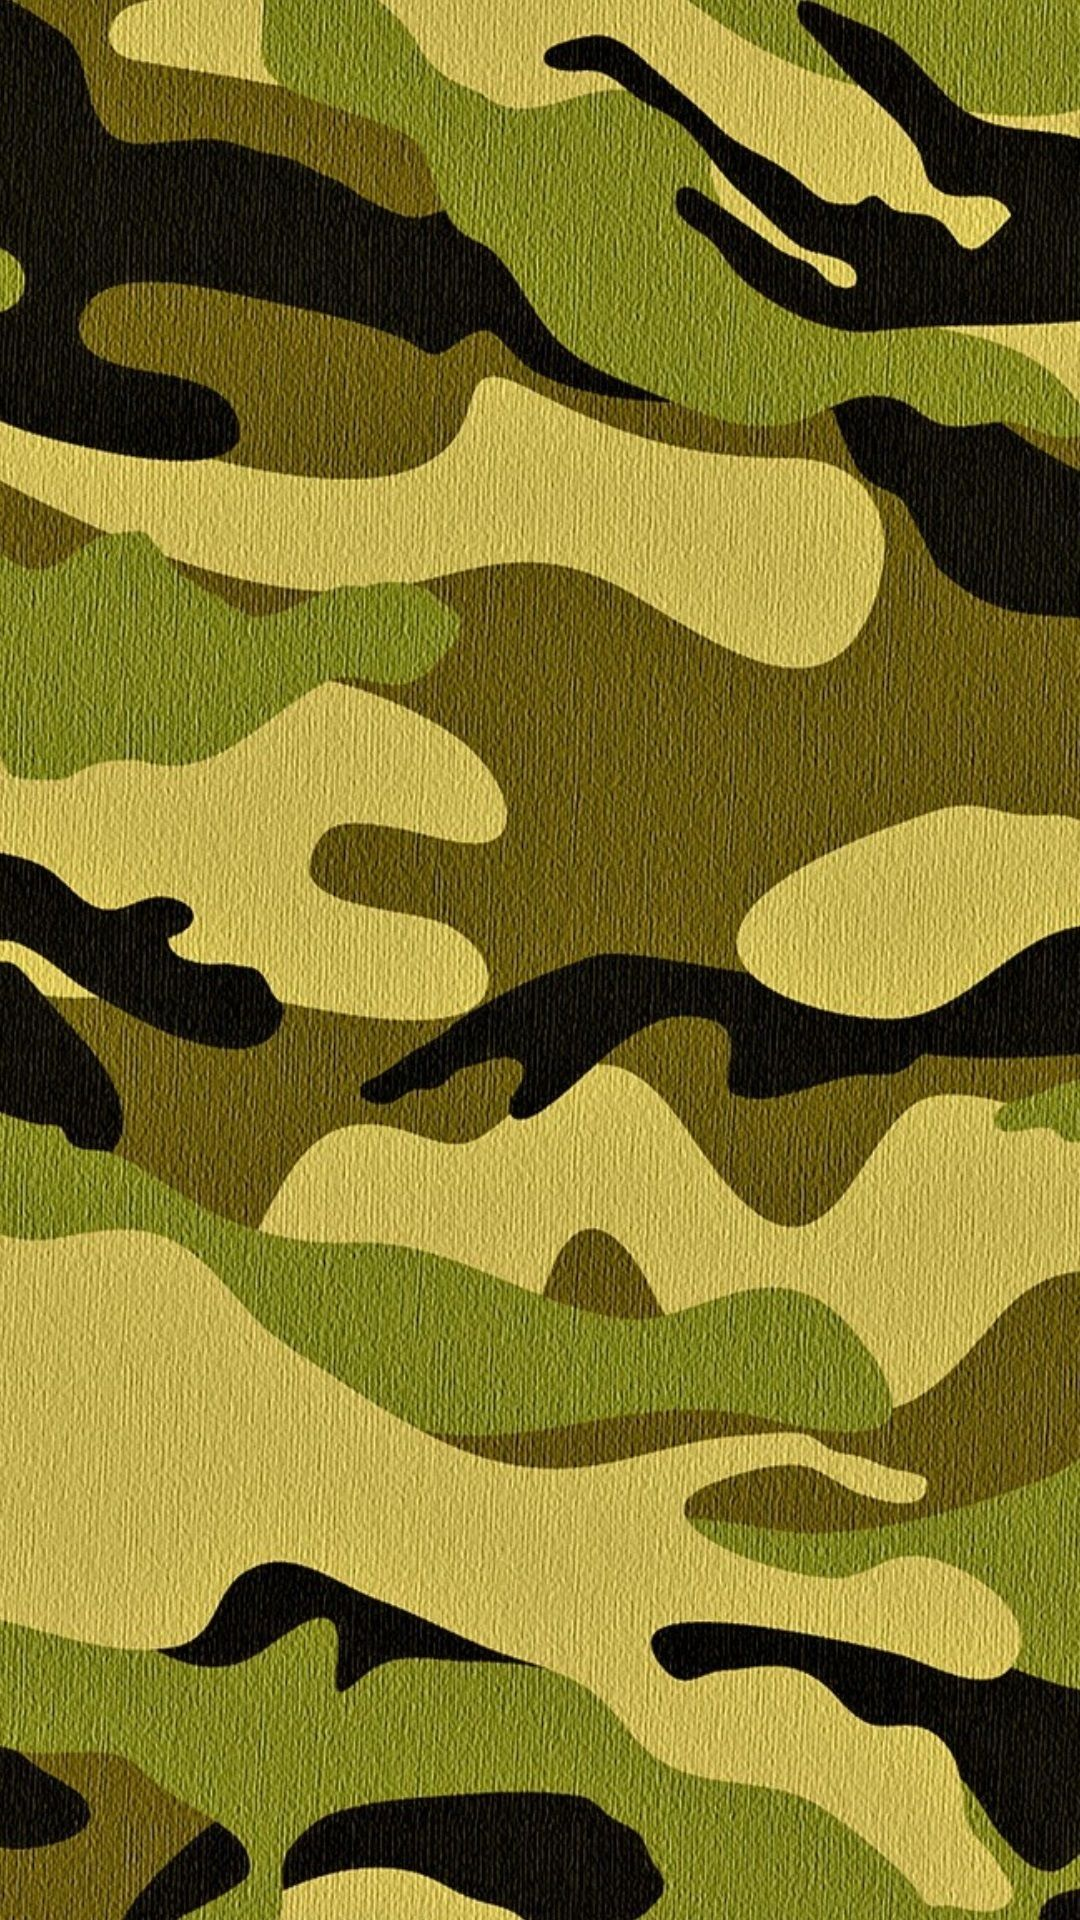 1080x1920 62+ Army Camo Wallpapers on WallpaperPlay